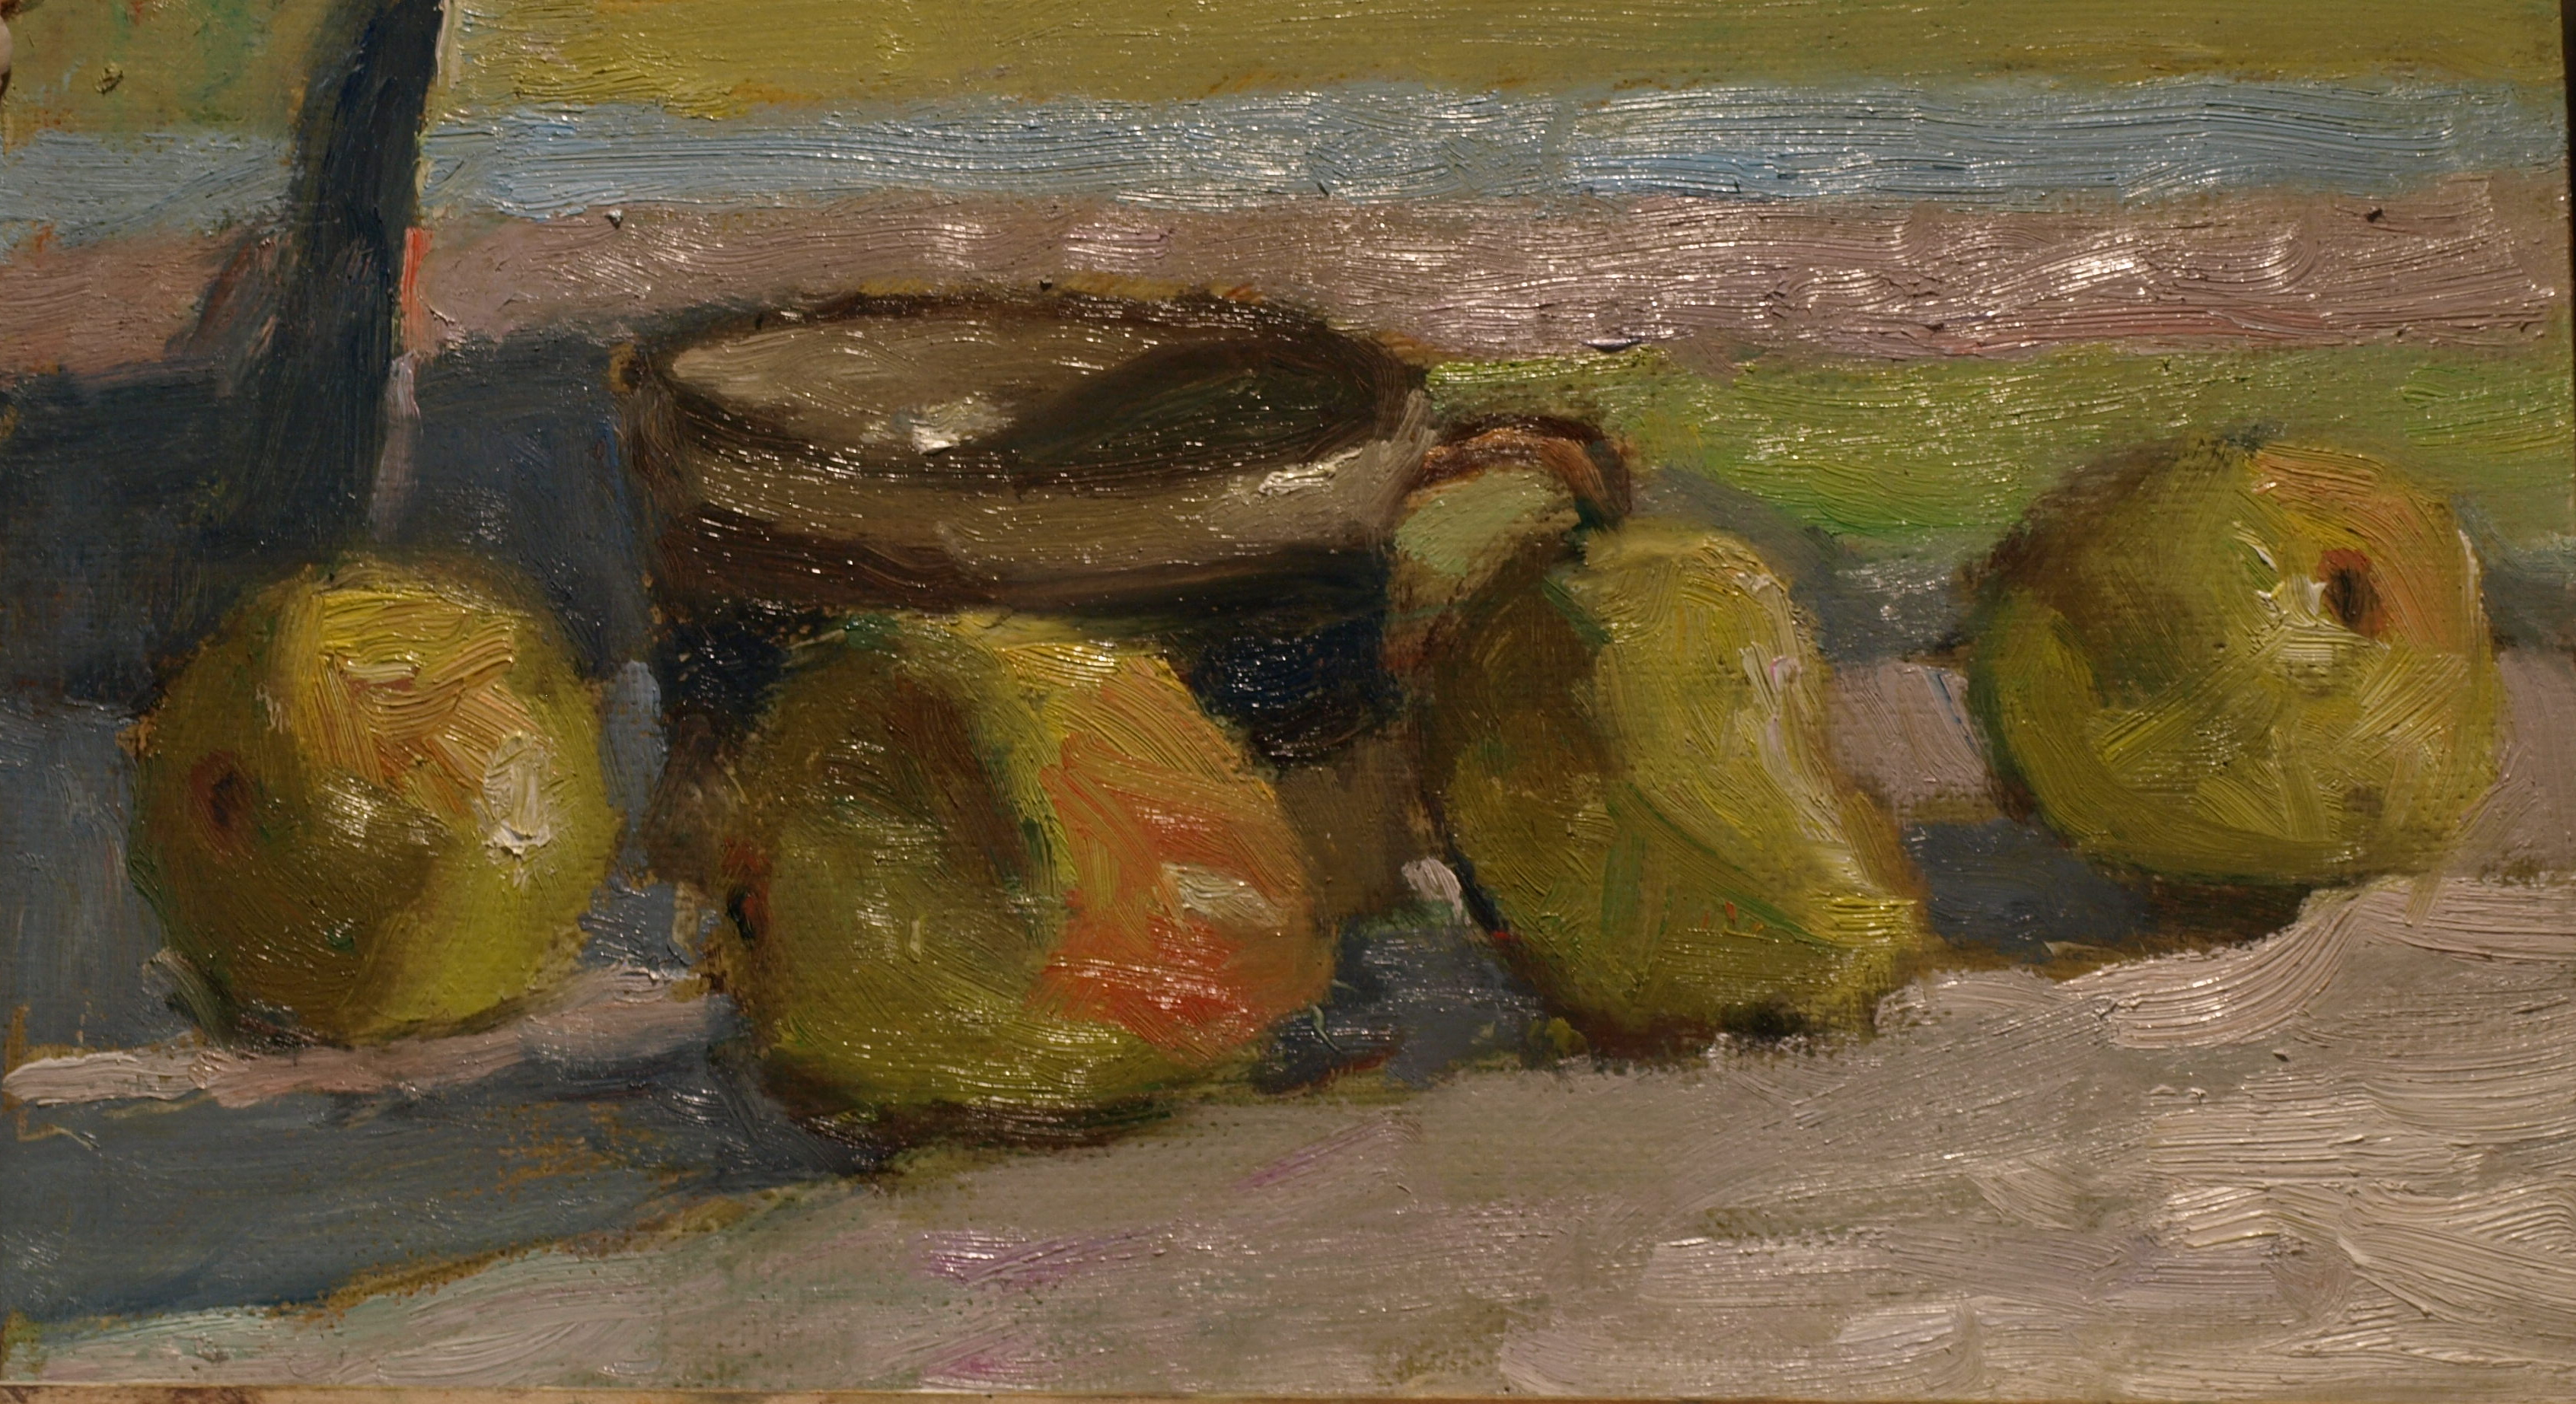 Four Pears, Oil on Panel, 8 x 14 Inches, by Richard Stalter, $220